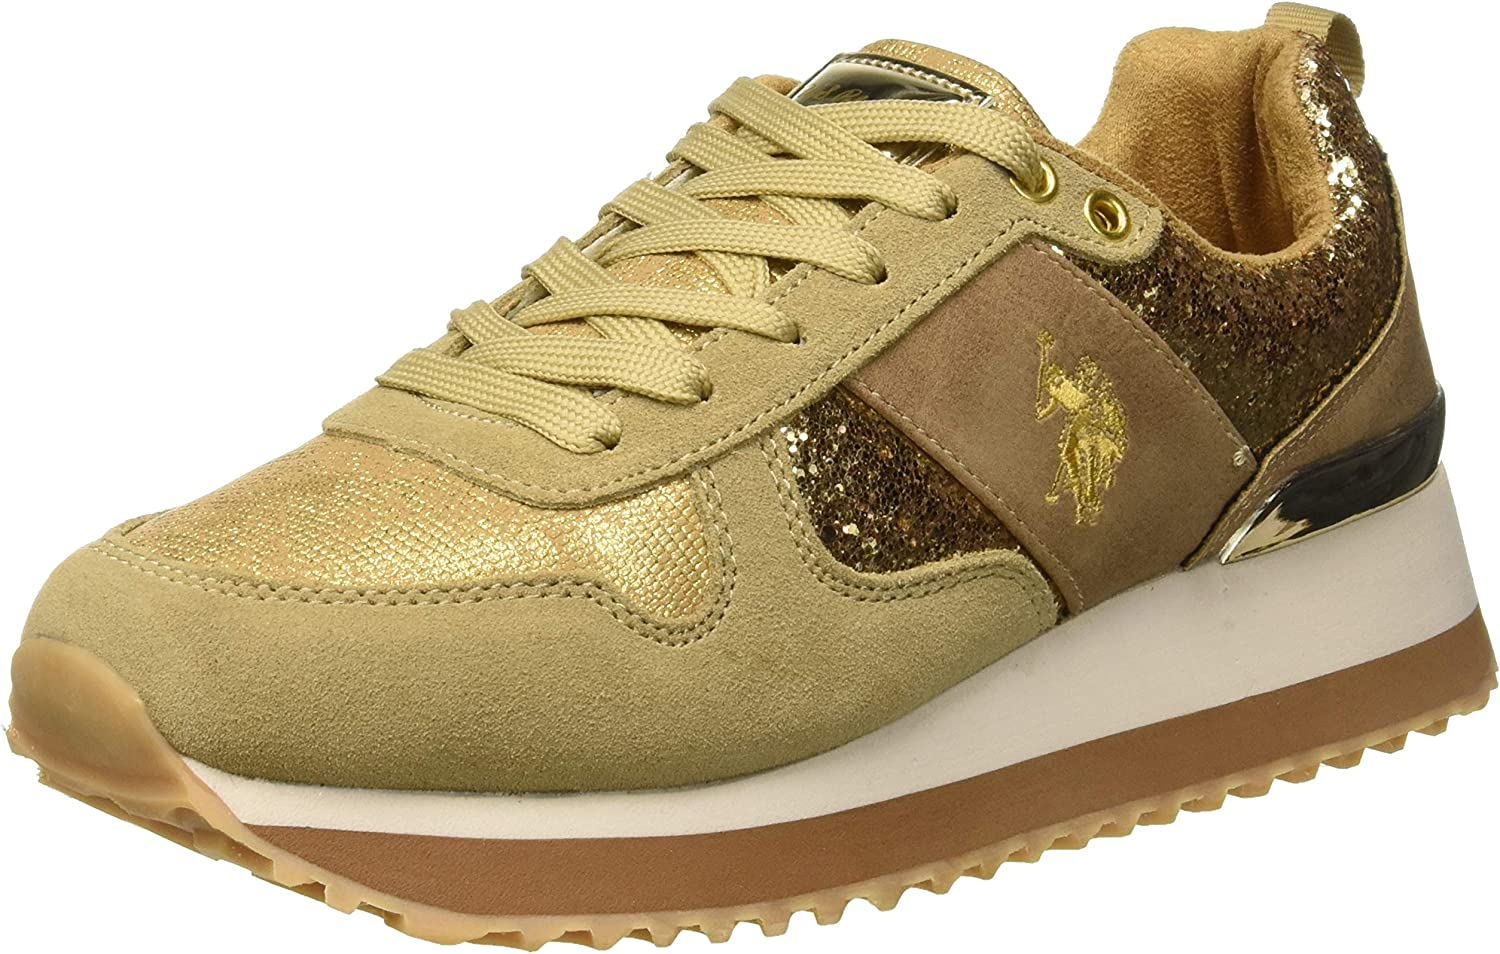 U.S.POLO ASSN. Damen Tabitha1 Crystal Turnschuhe